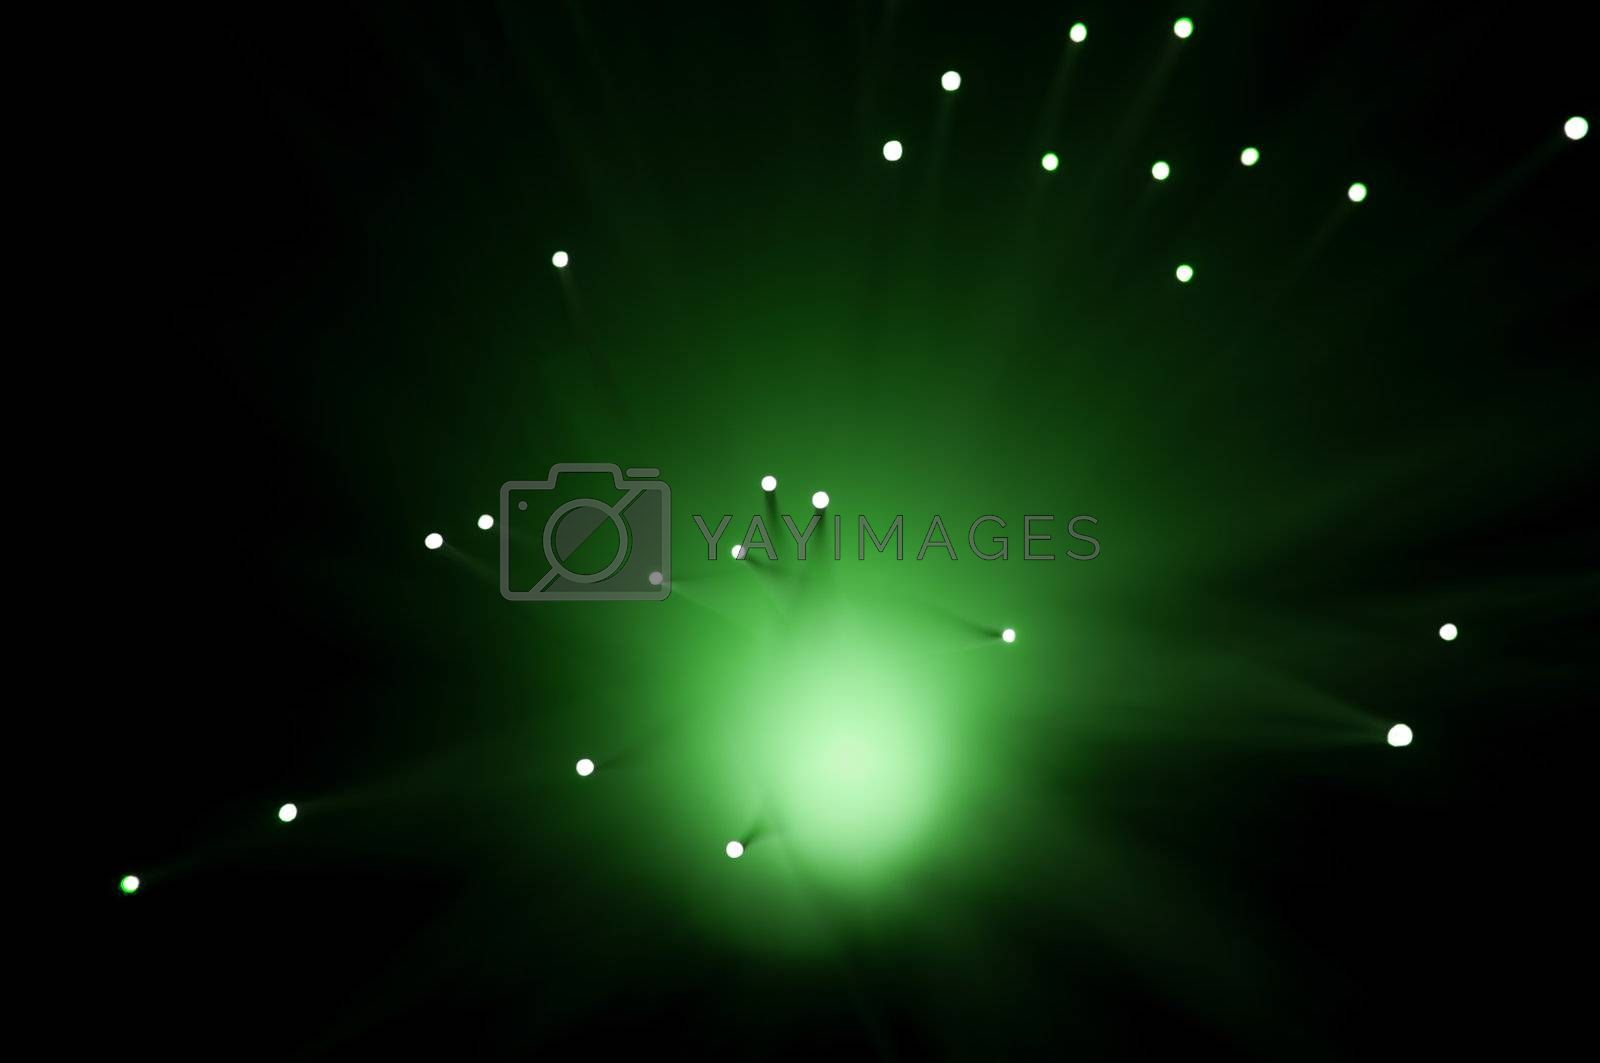 Abstract style capturing the ends of green illuminated fibre optic strands against black.